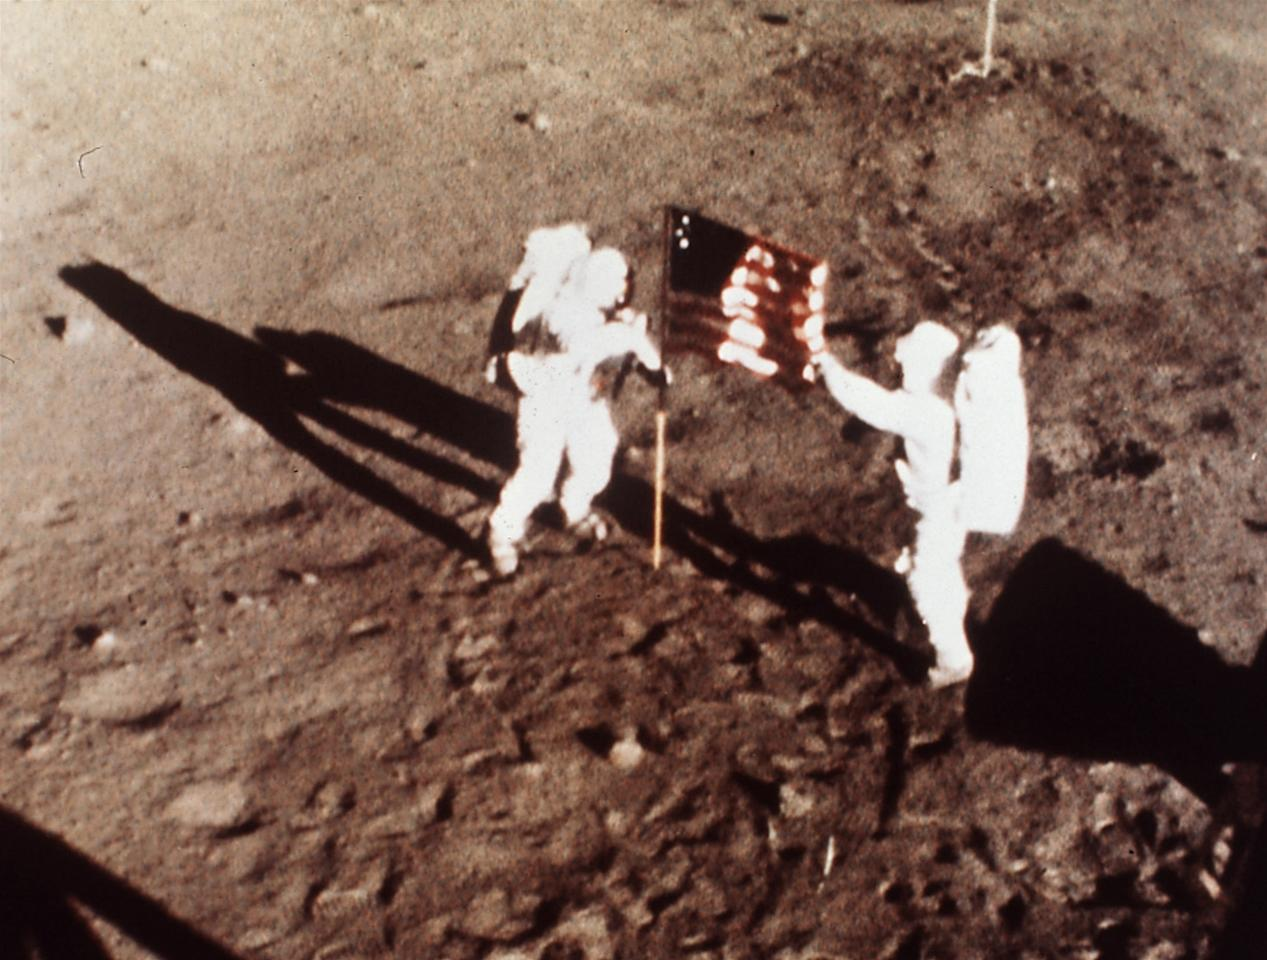 """FILE - In this July 20, 1969 file photo provided by NASA shows Apollo 11 astronauts Neil Armstrong and Edwin E. """"Buzz"""" Aldrin, the first men to land on the moon, plant the U.S. flag on the lunar surface. The family of Neil Armstrong, the first man to walk on the moon, says he has died at age 82. A statement from the family says he died following complications resulting from cardiovascular procedures. It doesn't say where he died. Armstrong commanded the Apollo 11 spacecraft that landed on the moon July 20, 1969. He radioed back to Earth the historic news of """"one giant leap for mankind."""" Armstrong and fellow astronaut Edwin """"Buzz"""" Aldrin spent nearly three hours walking on the moon, collecting samples, conducting experiments and taking photographs. In all, 12 Americans walked on the moon from 1969 to 1972. (AP Photo/NASA)"""